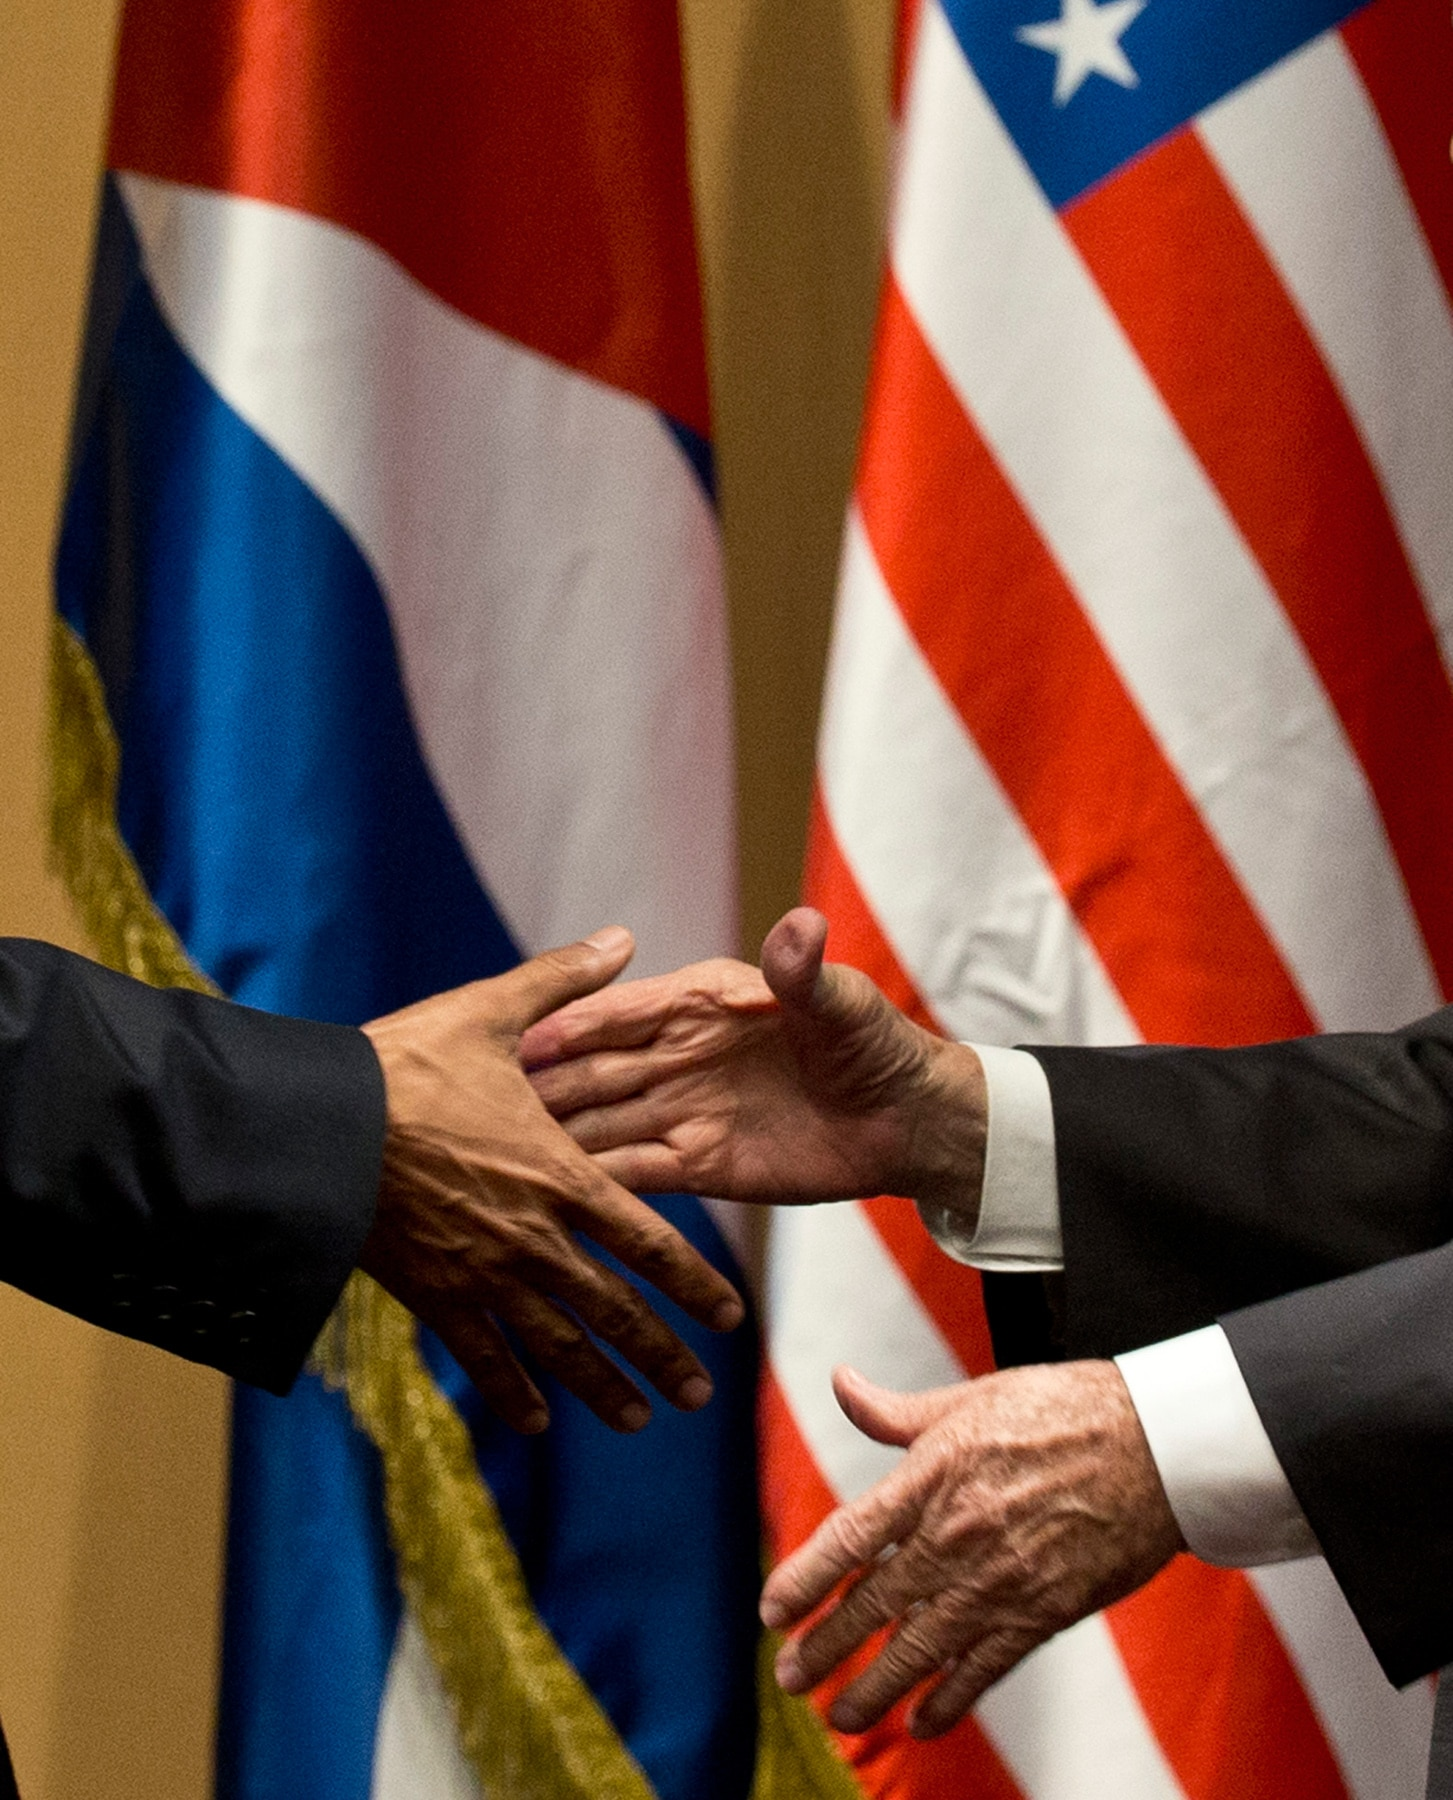 Hands reaching out to shake, with Cuban and U.S. flags in background (© AP Images)